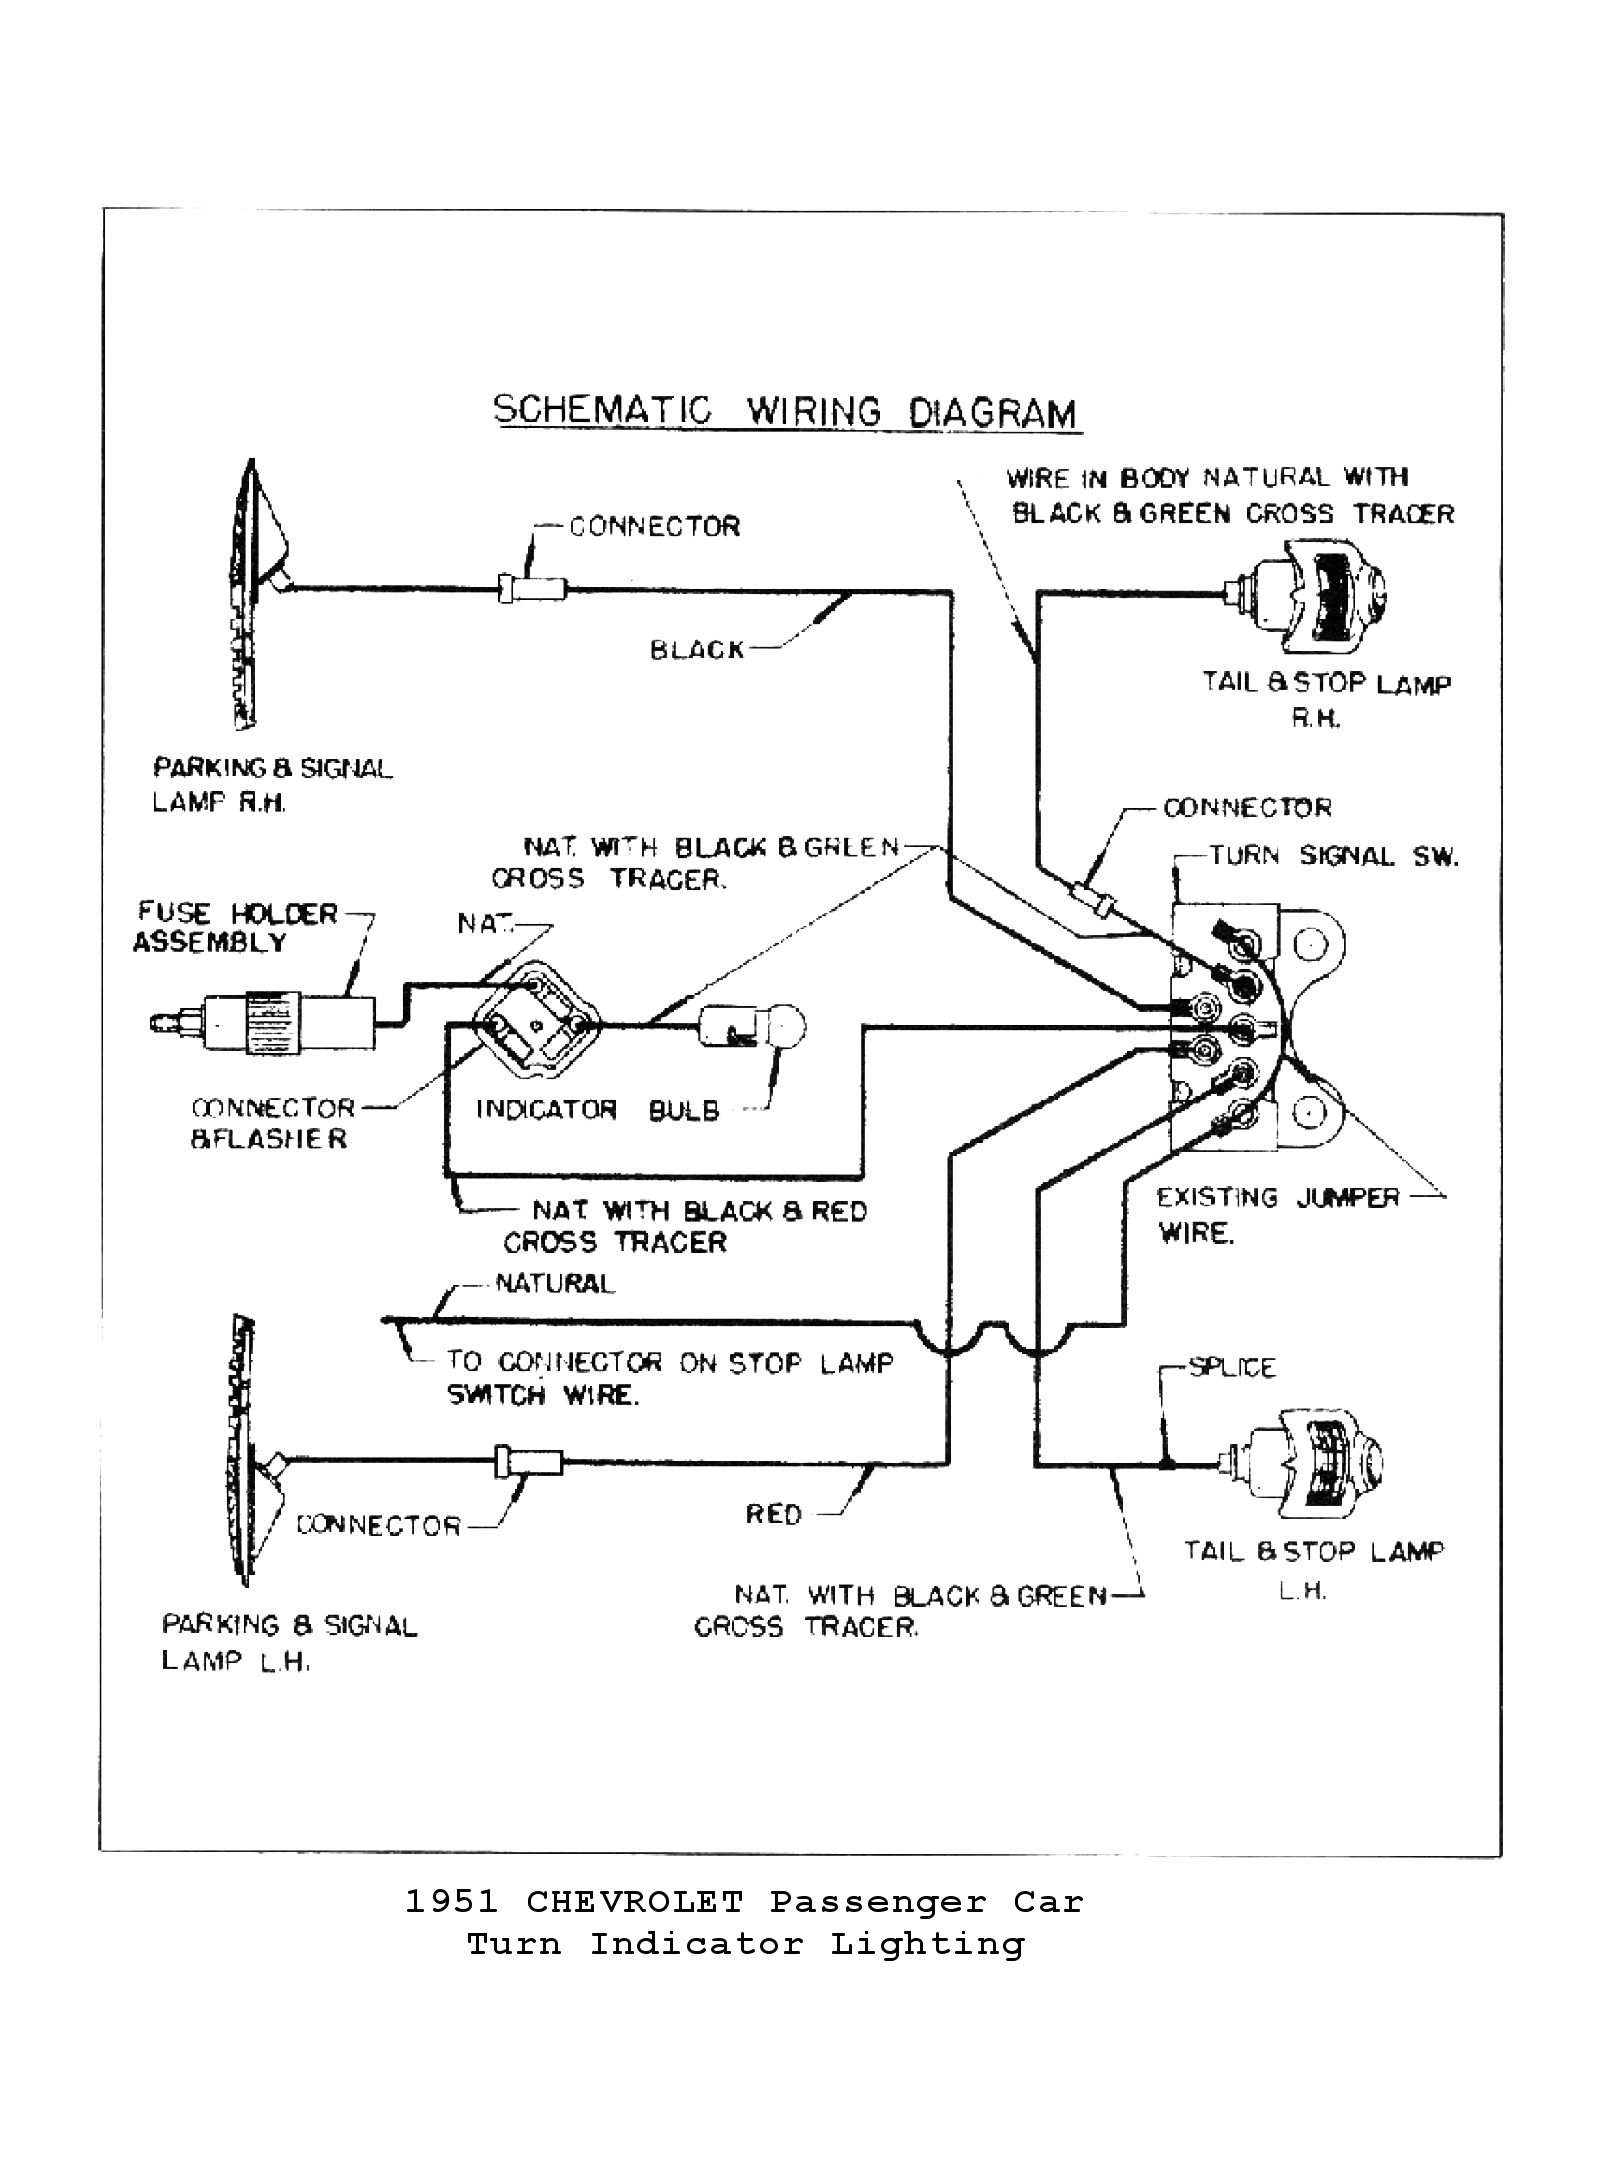 55 chevy wire diagram catalogue of schemas wiring scamatic for 1955 chevy wiring